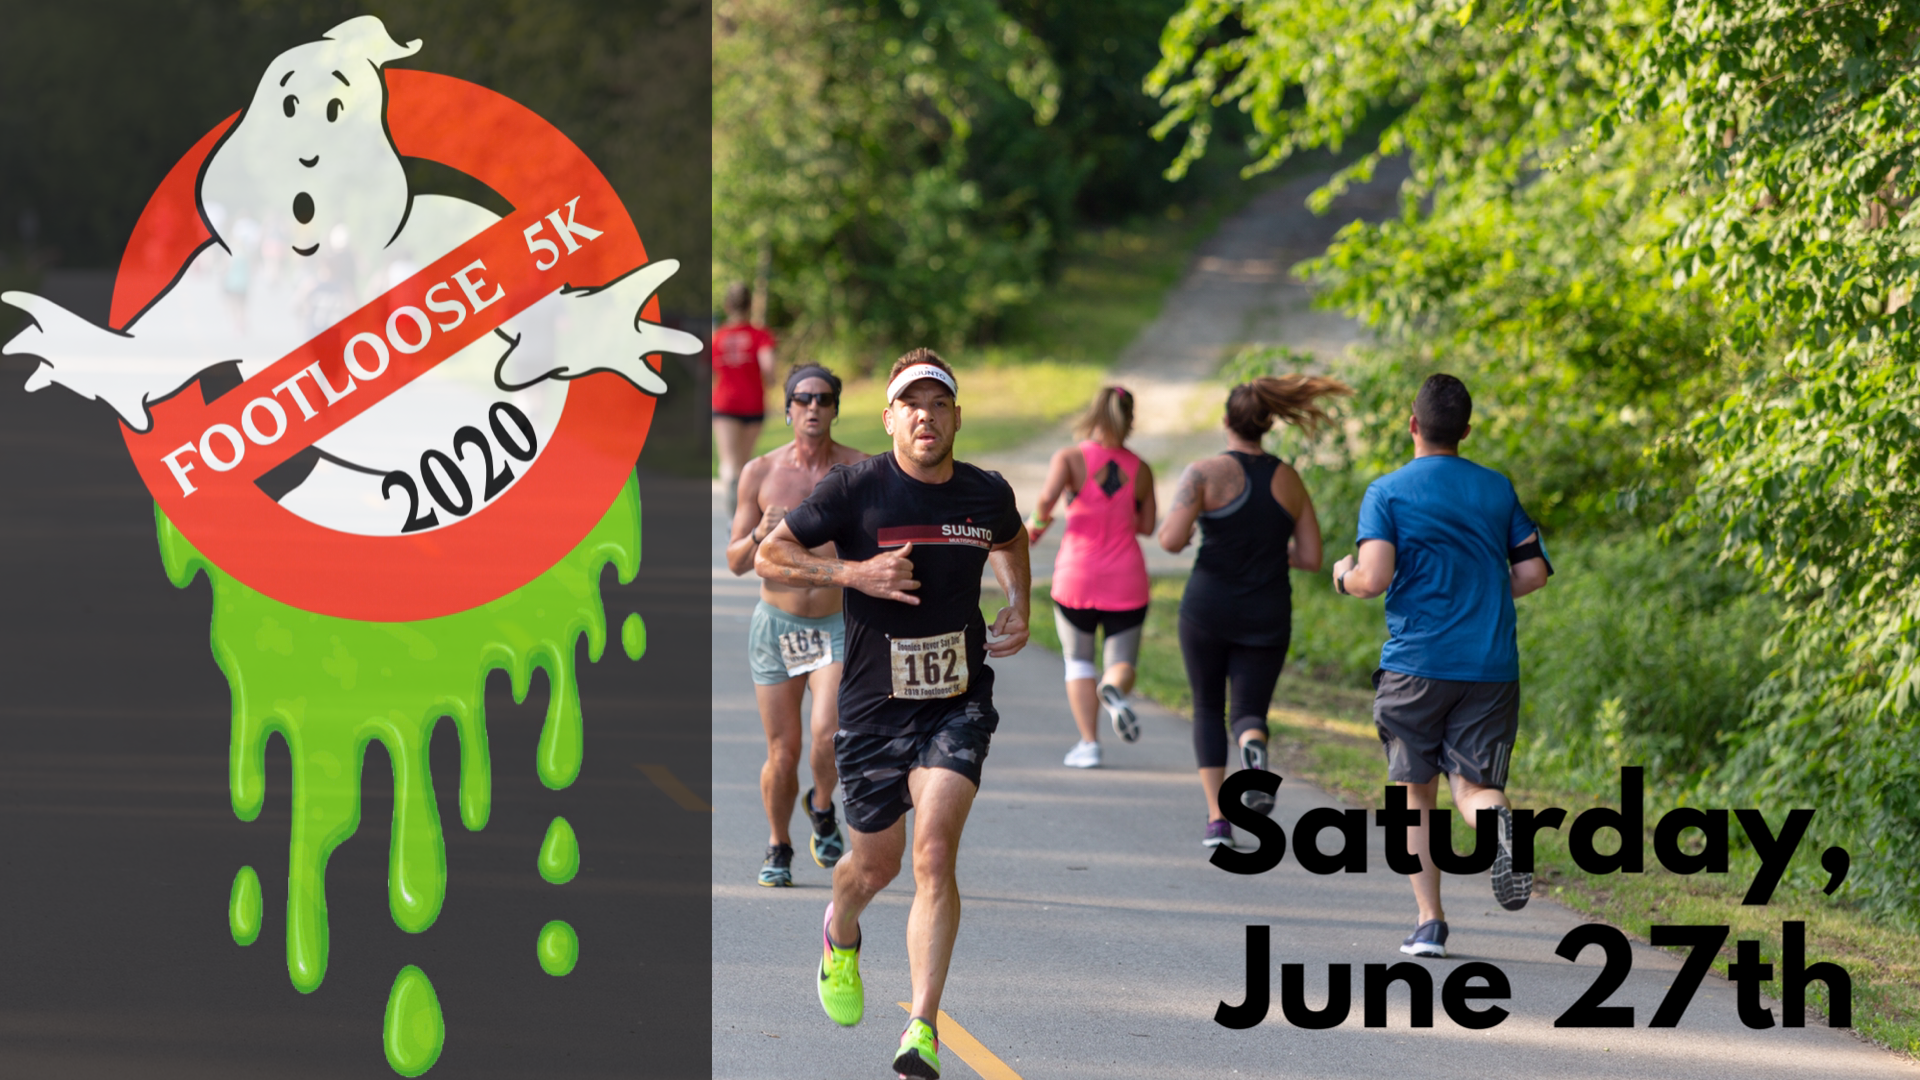 Footloose 5K June 27